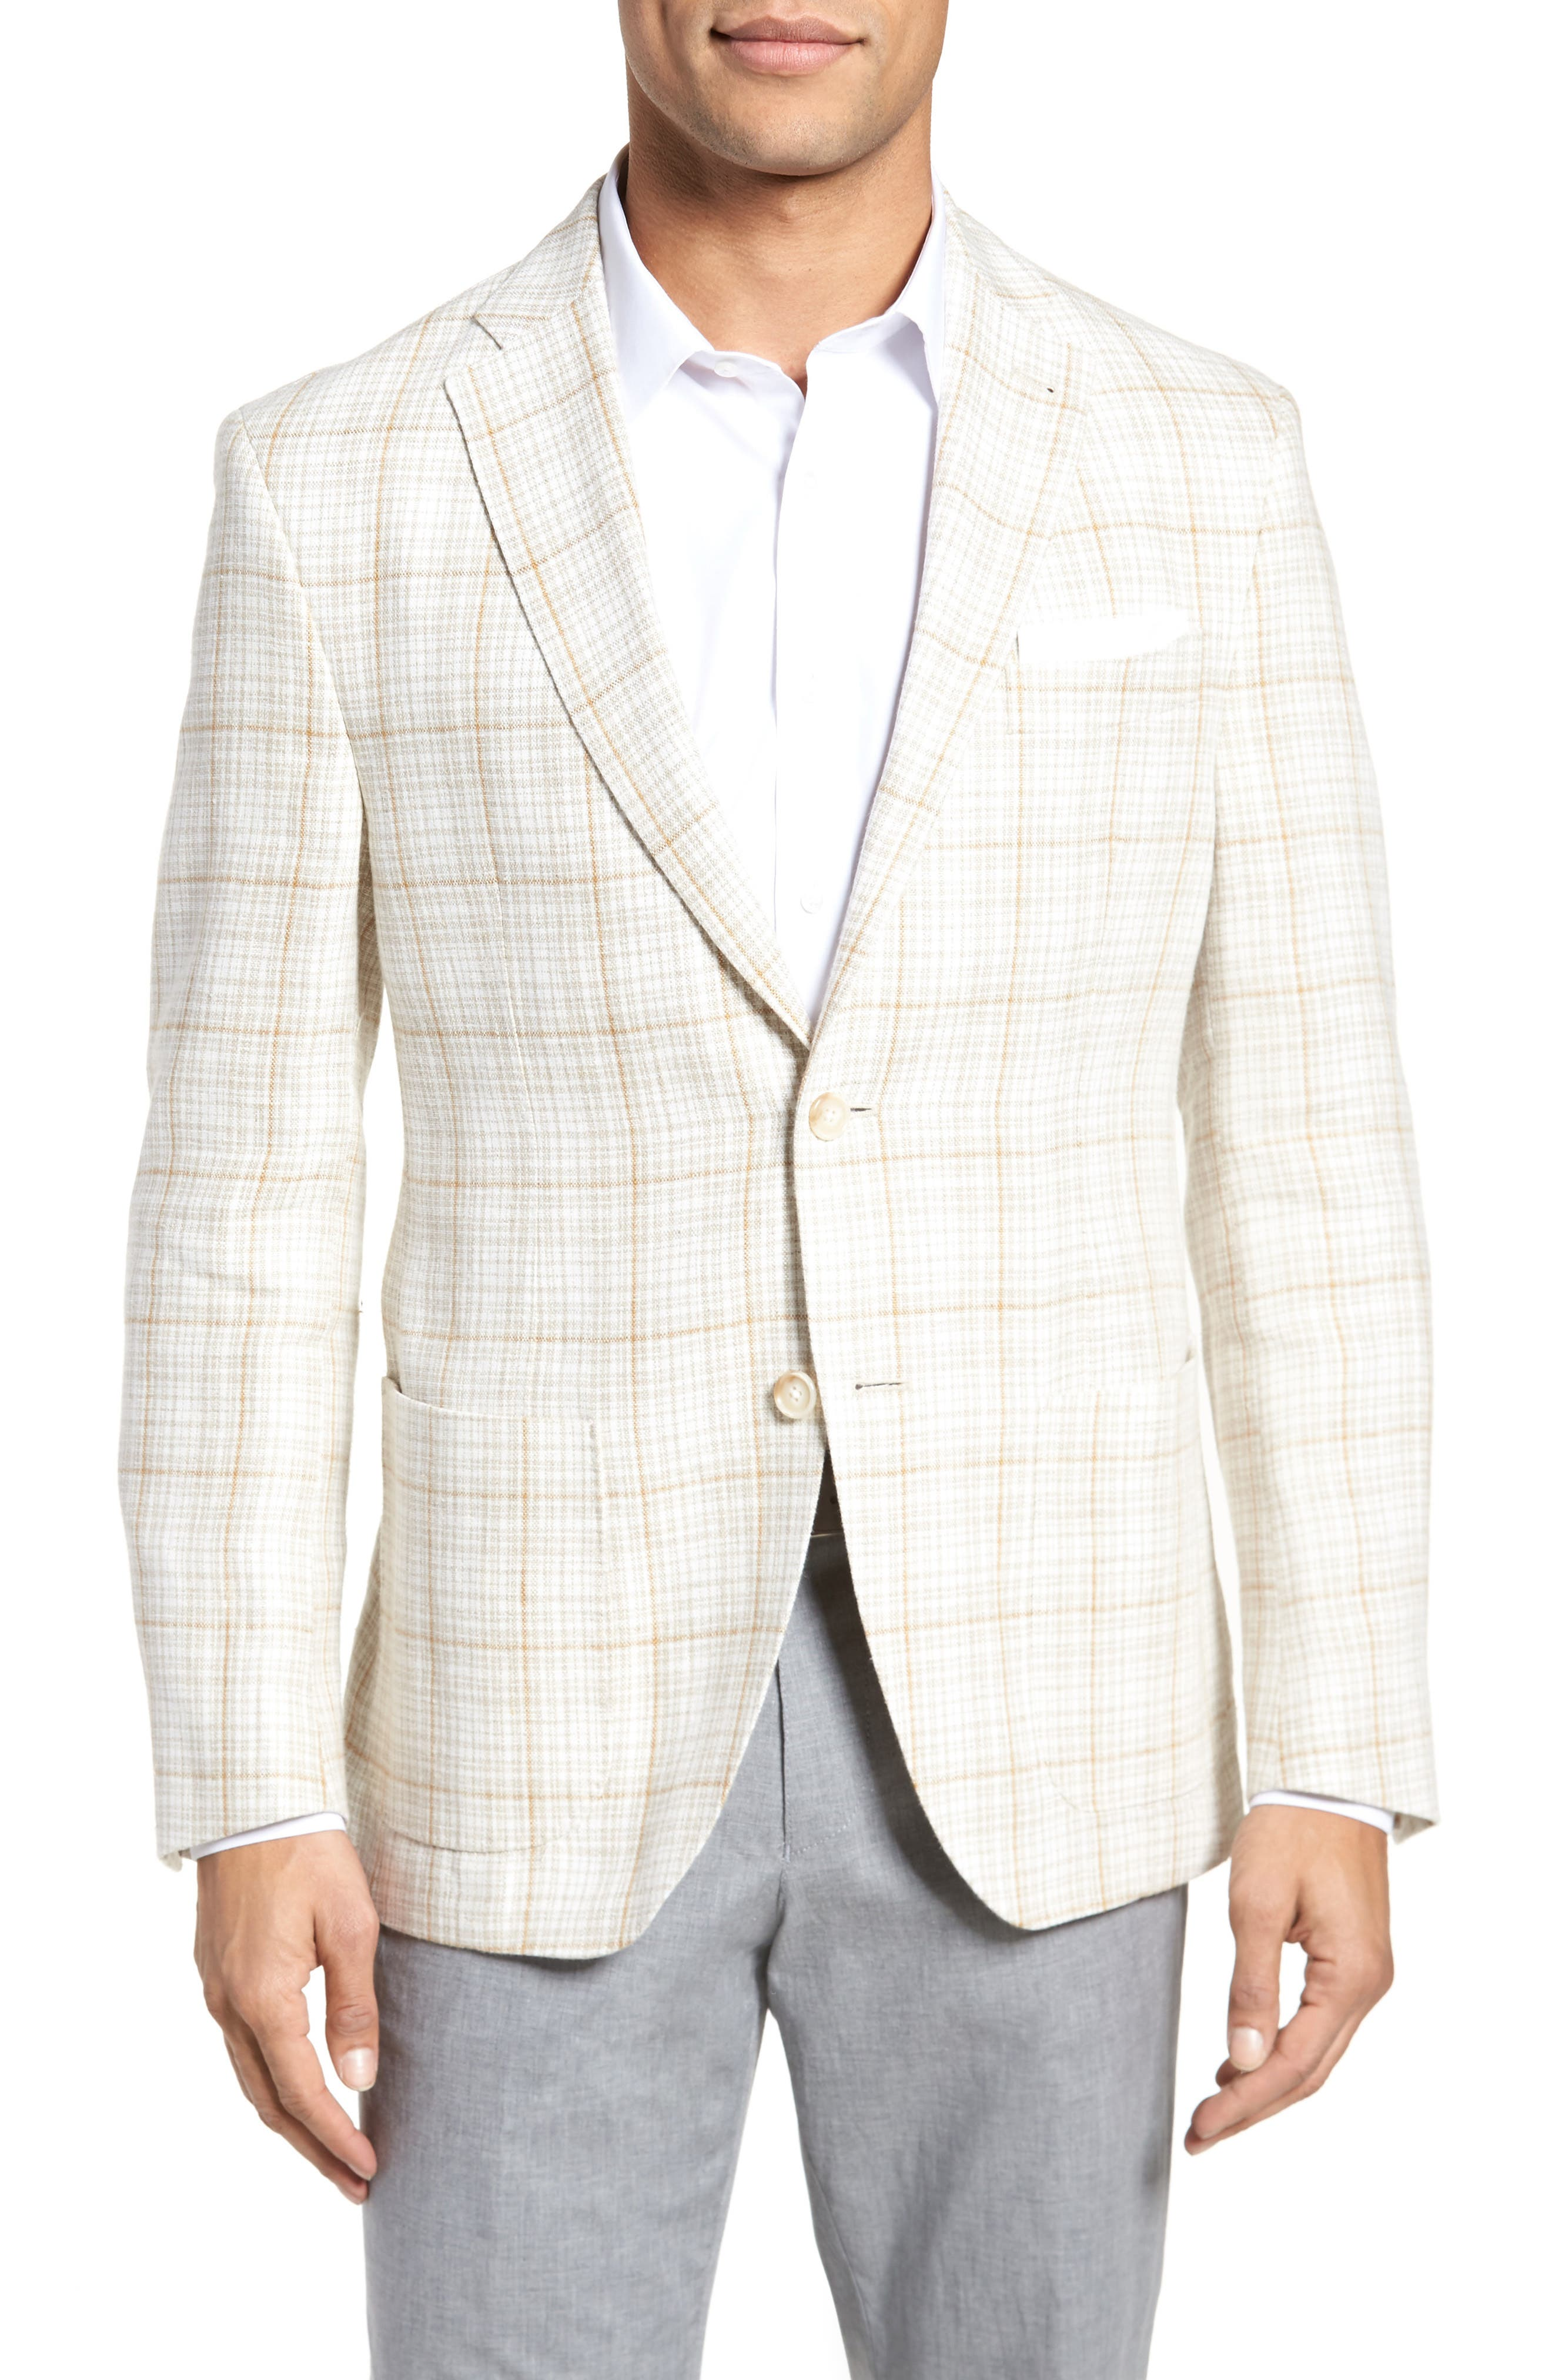 Trent Trim Fit Plaid Linen Sport Coat,                             Main thumbnail 1, color,                             Light Cream